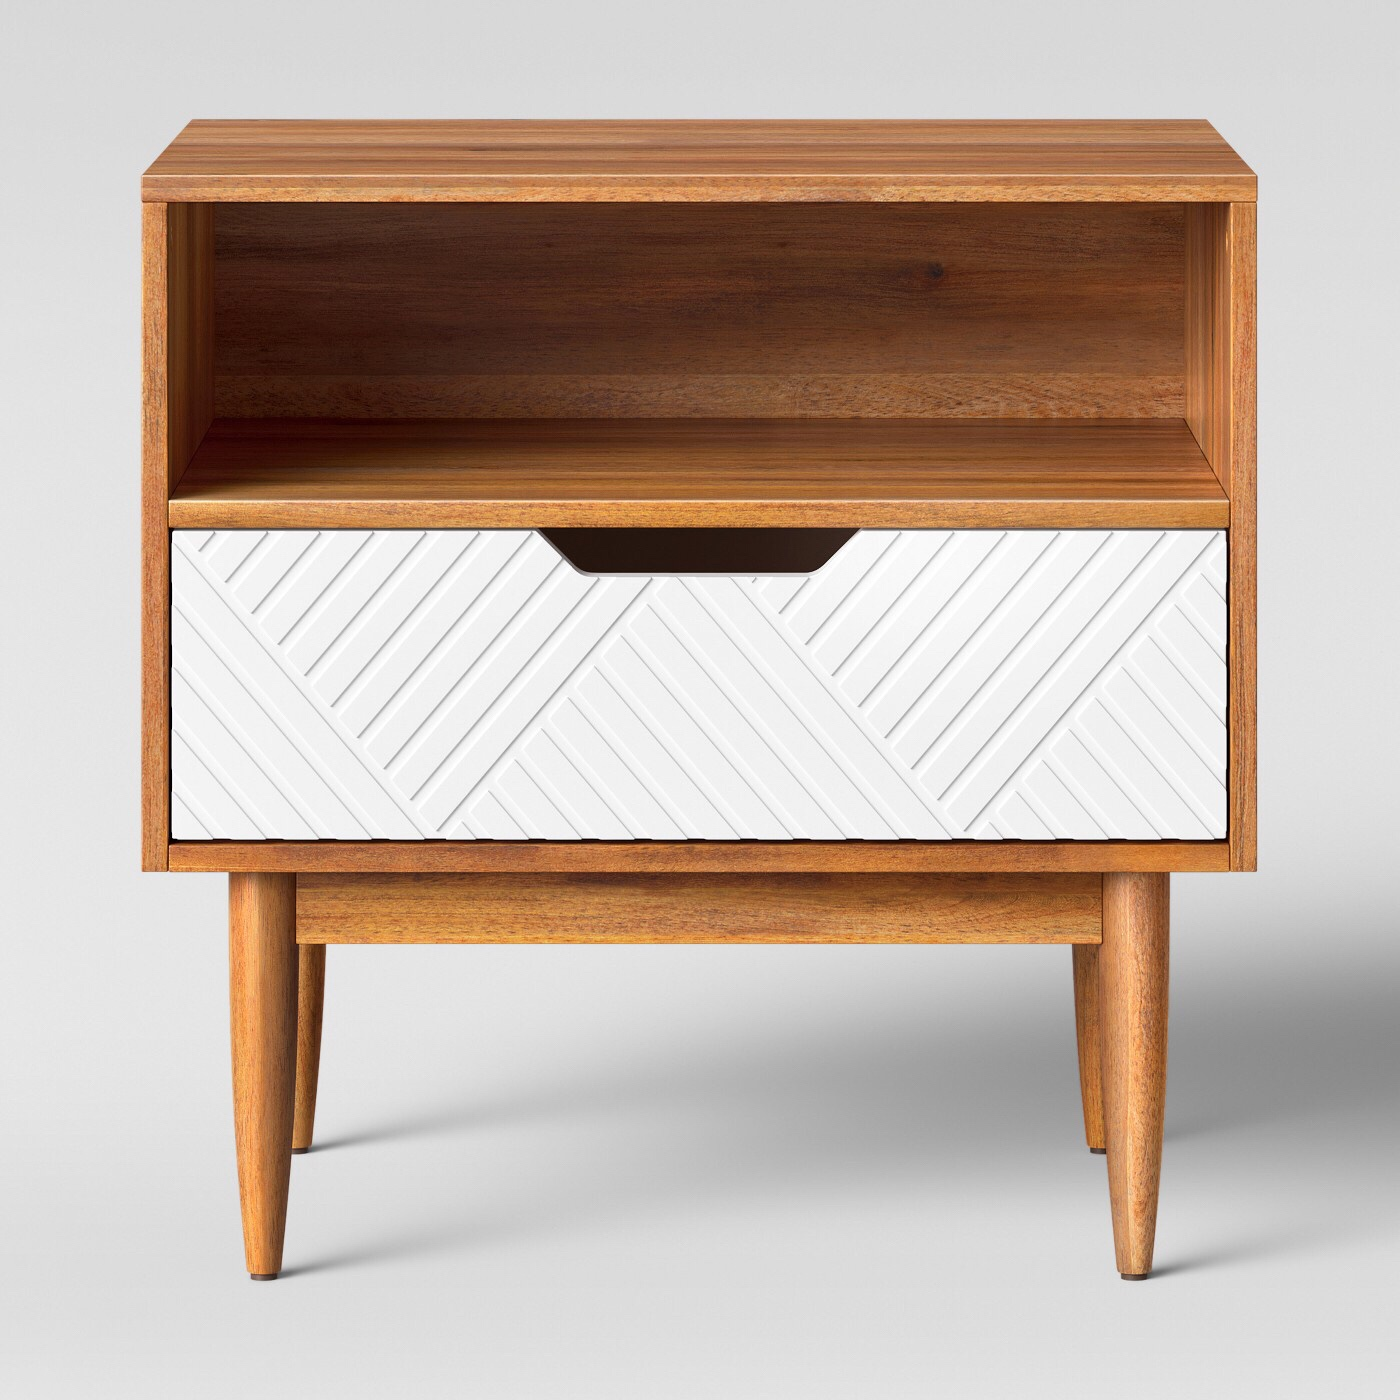 Side table with geo patterning